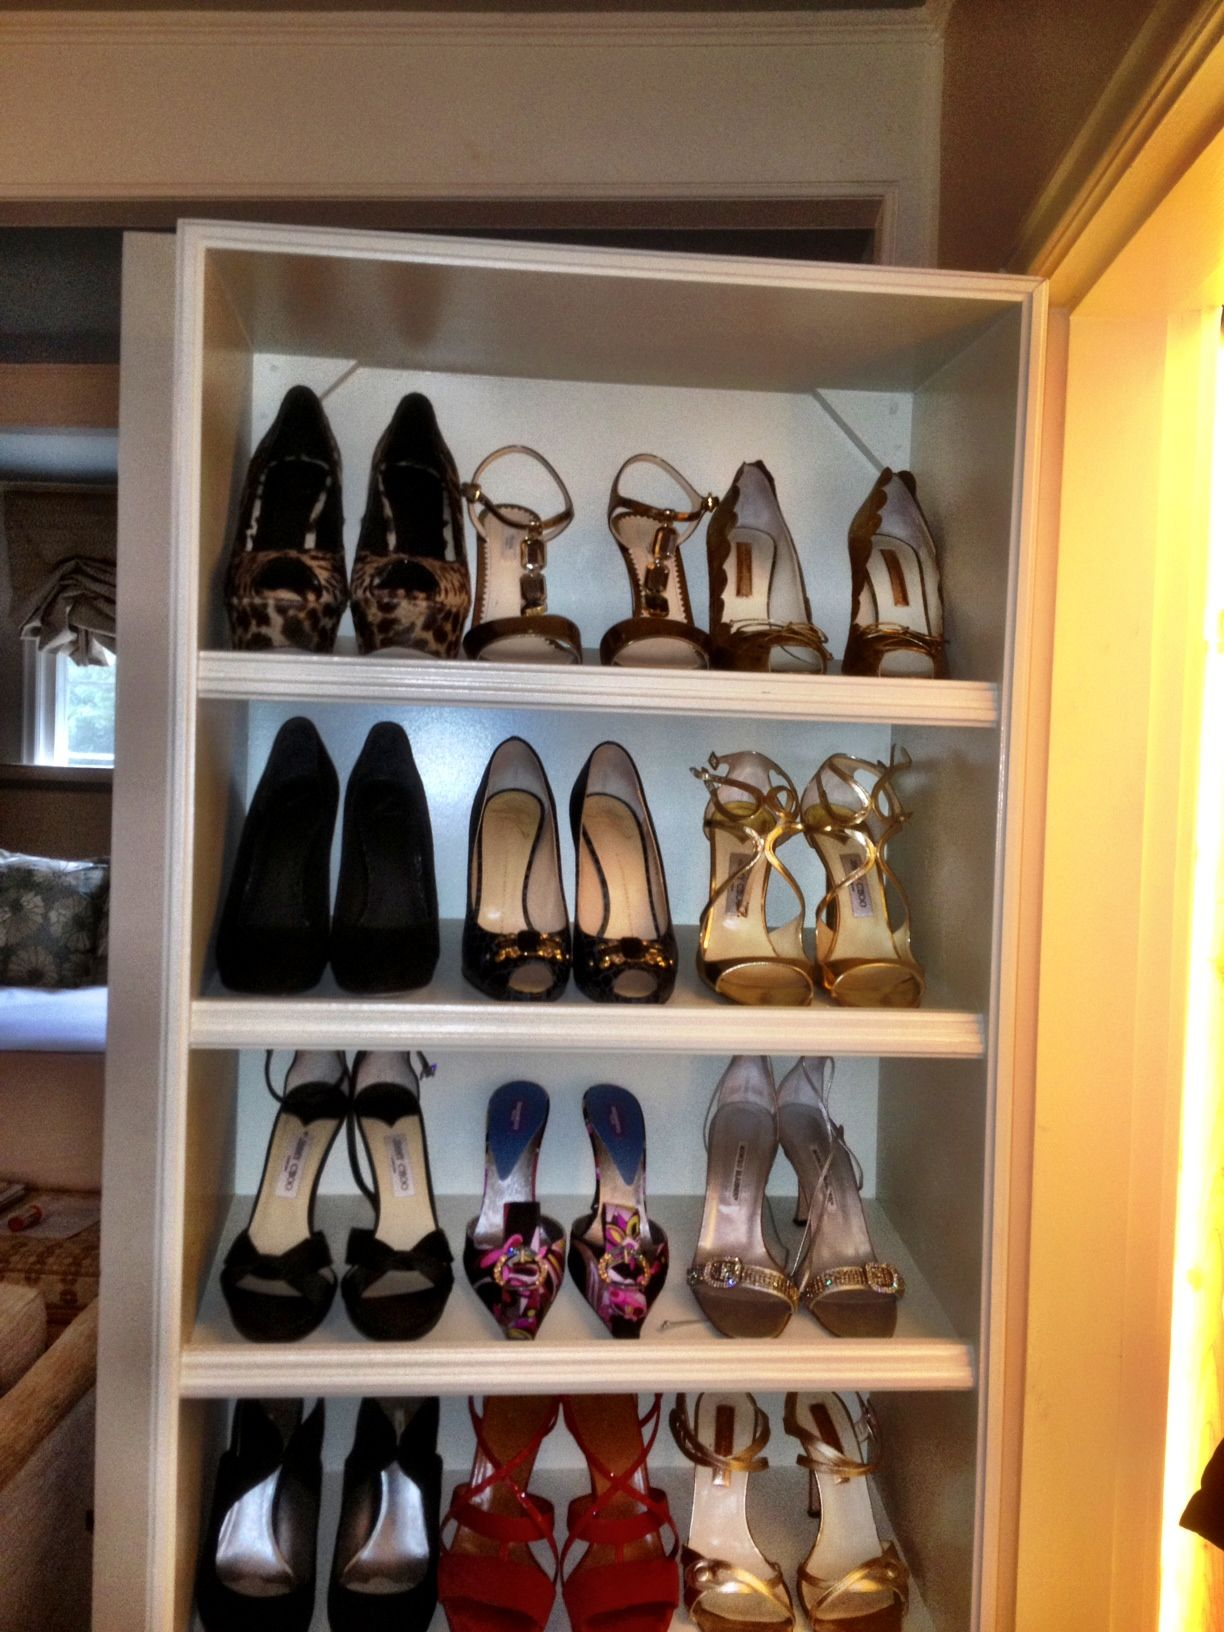 Great Shoe Rack On The Back Of A Door   Perfect For Small Closets With  Limited Storage.